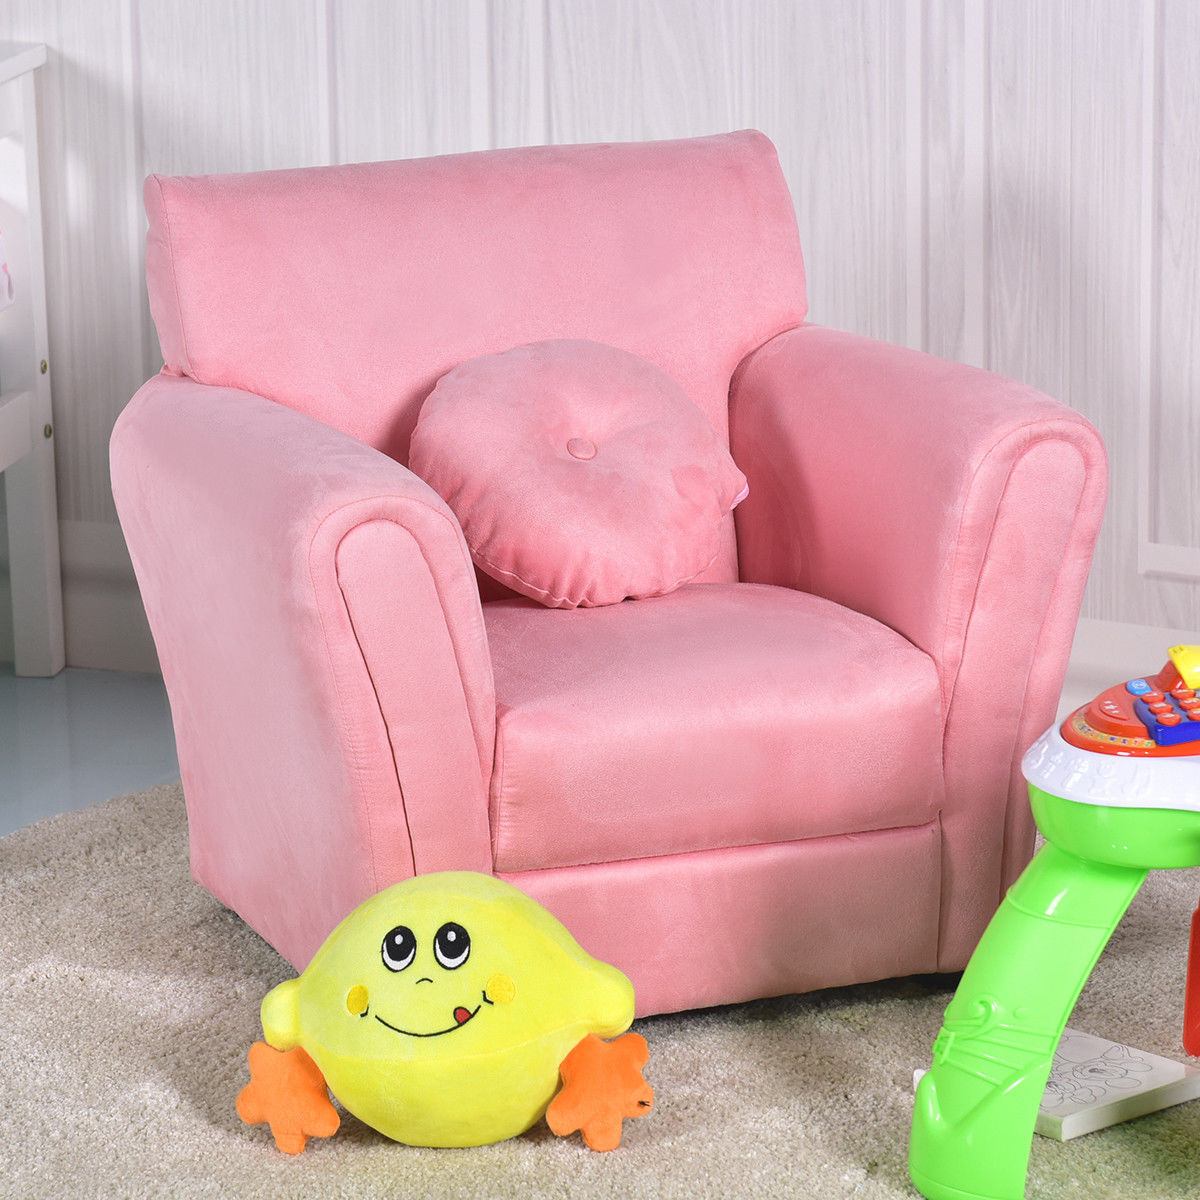 Gymax Kids Sofa Armrest Chair Couch Children Living Room Birthday Gift w/ Pillow Pink